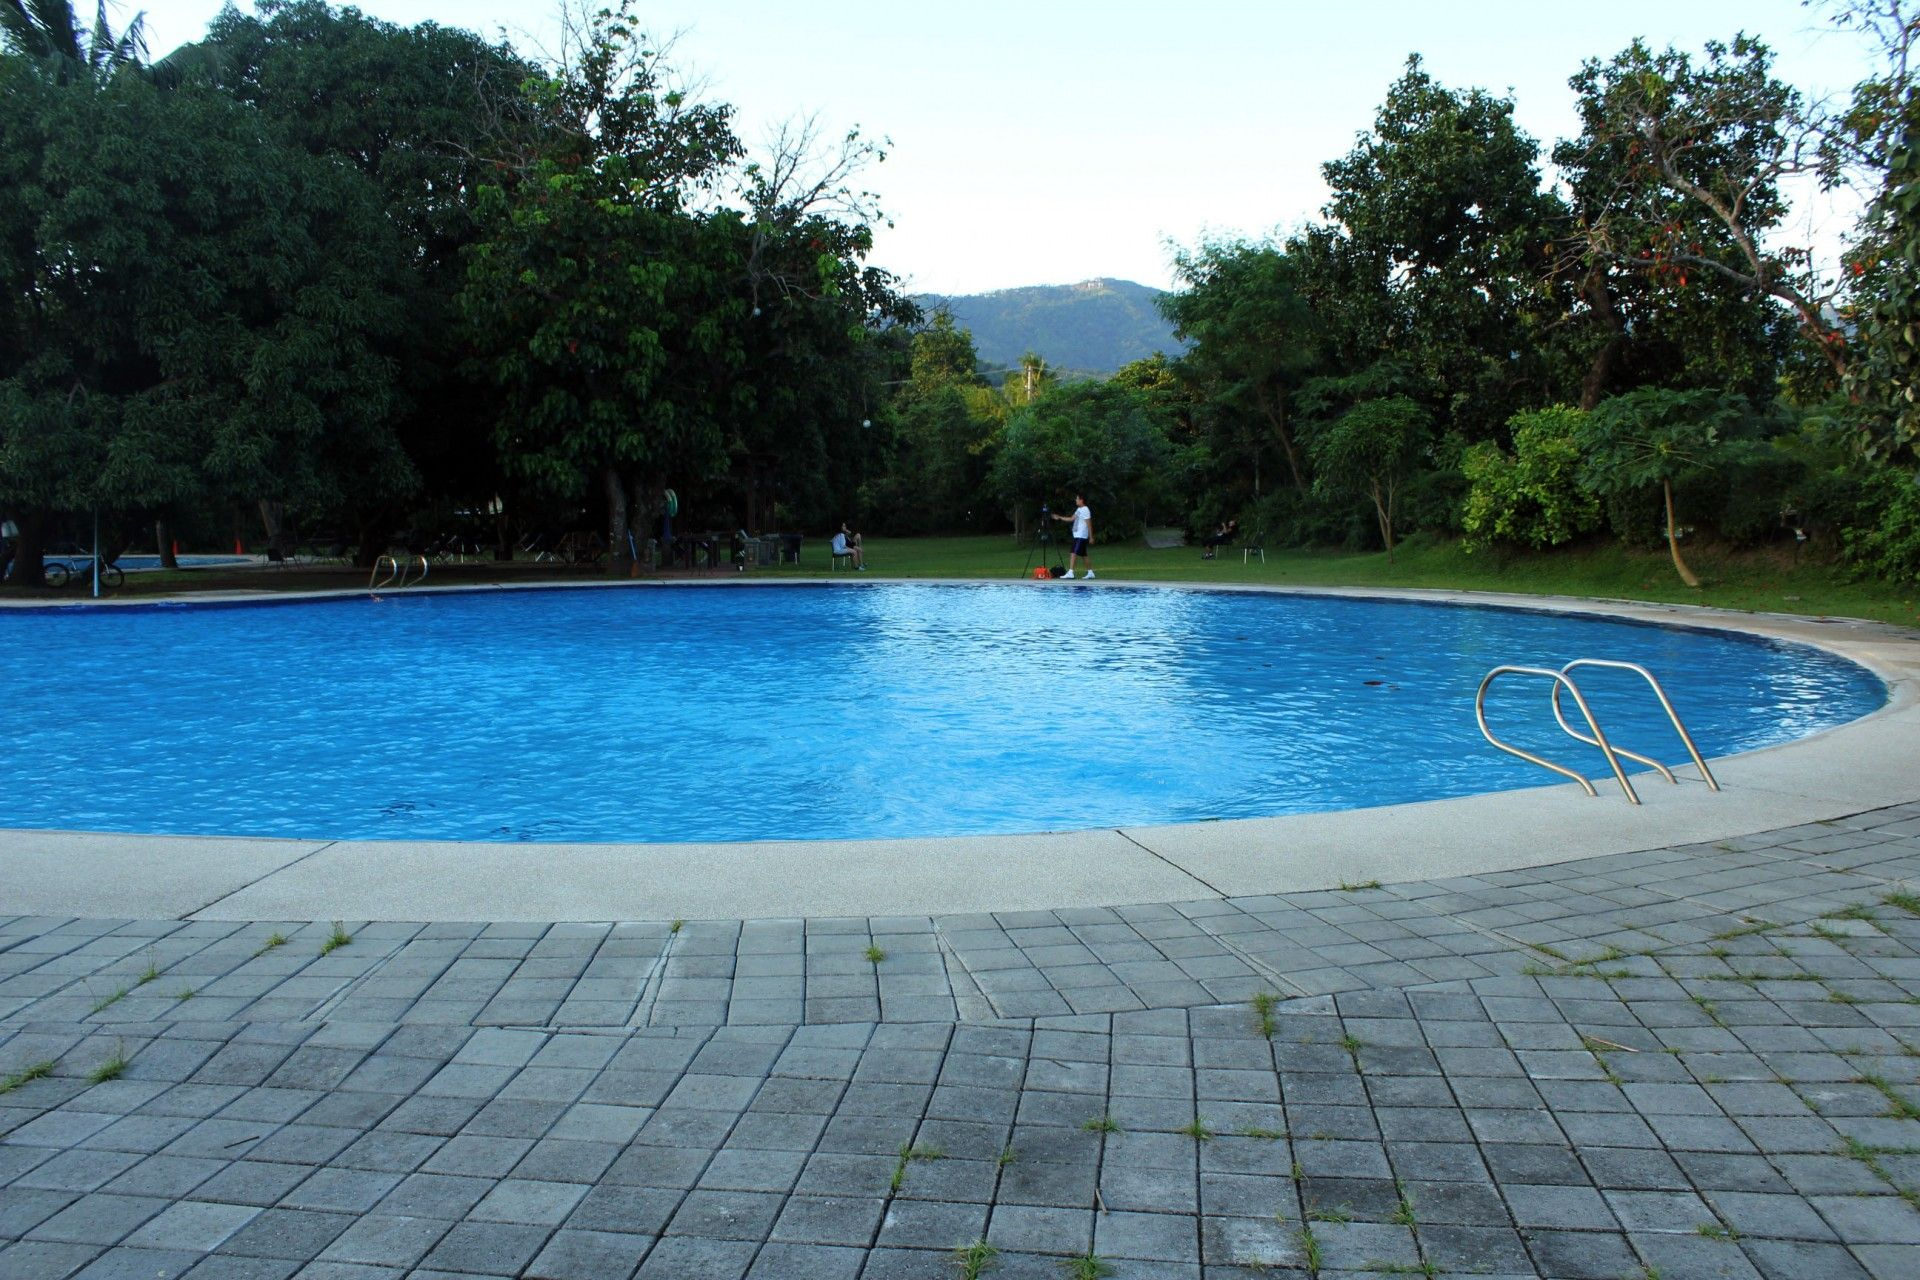 Pin On Hd Wallpapers Co Download swimming pool hd wallpapers to